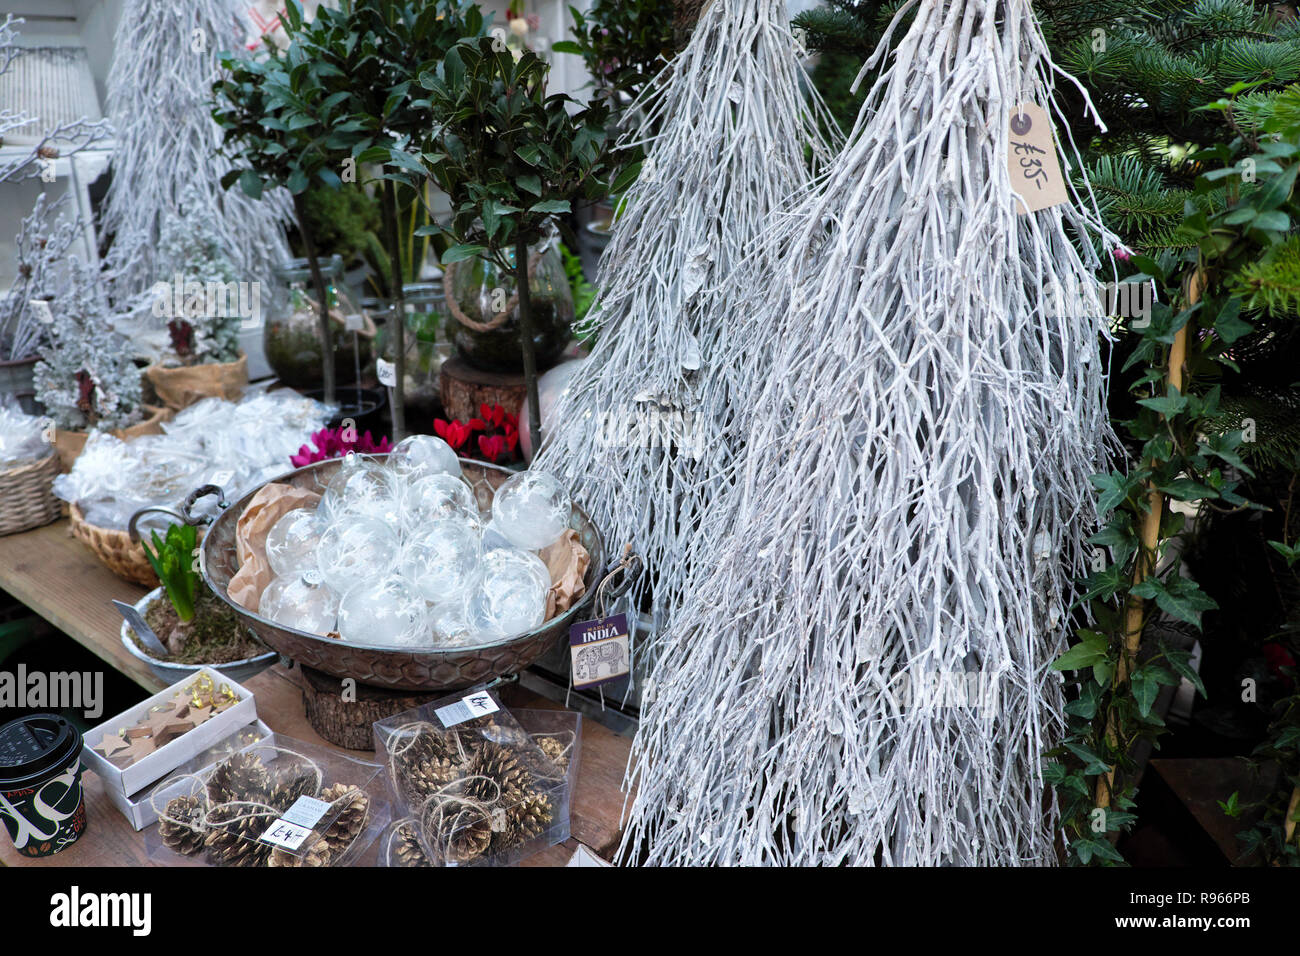 Christmas Ornaments White Painted Branches Glass Baubles Decorations For Sale On A Stall At Borough Market In South London England Uk Kathy Dewitt Stock Photo Alamy